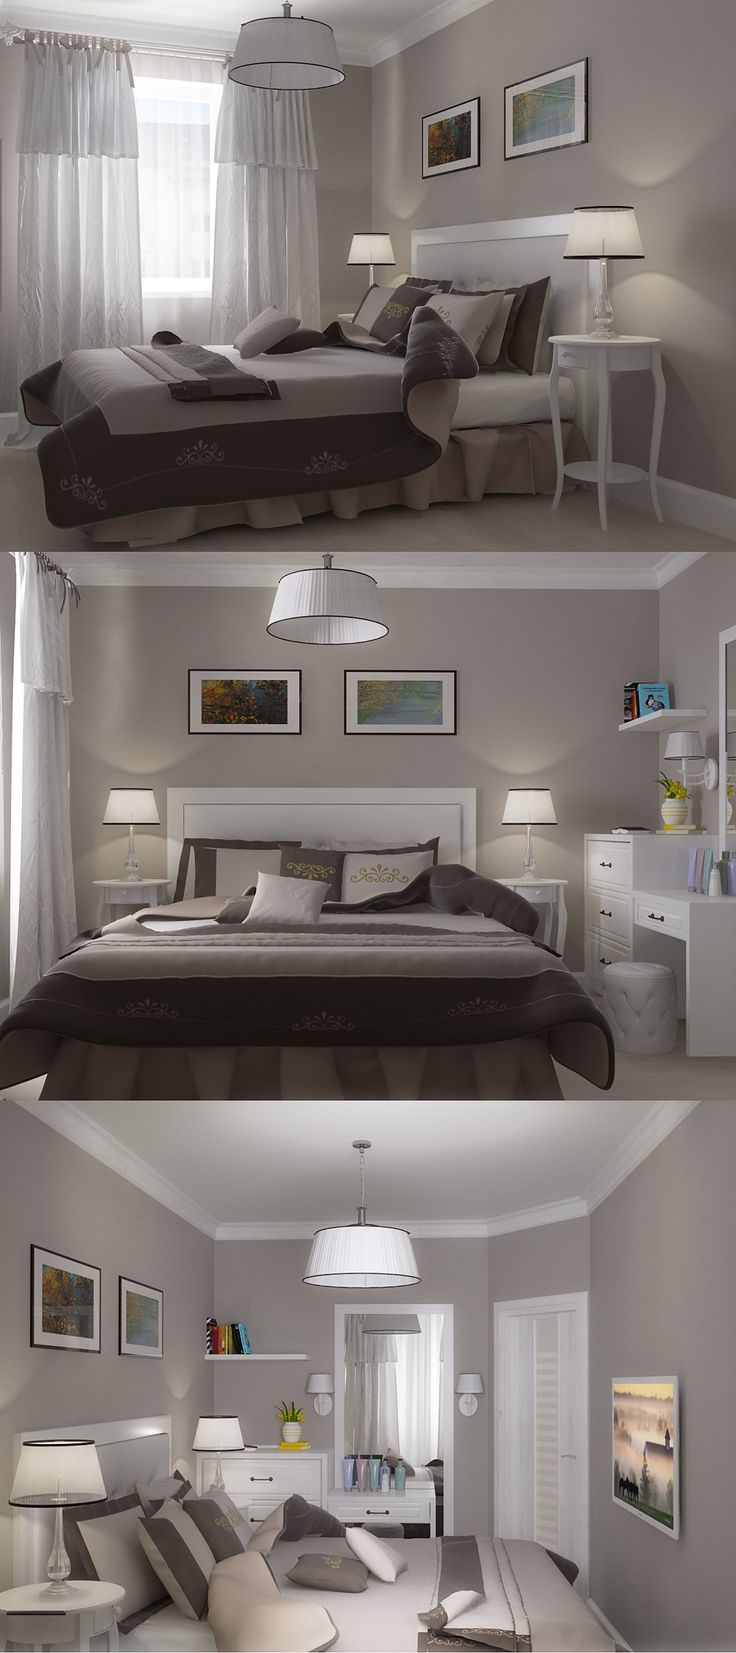 Small bedroom- this is probably almost closest to front bedroom layout